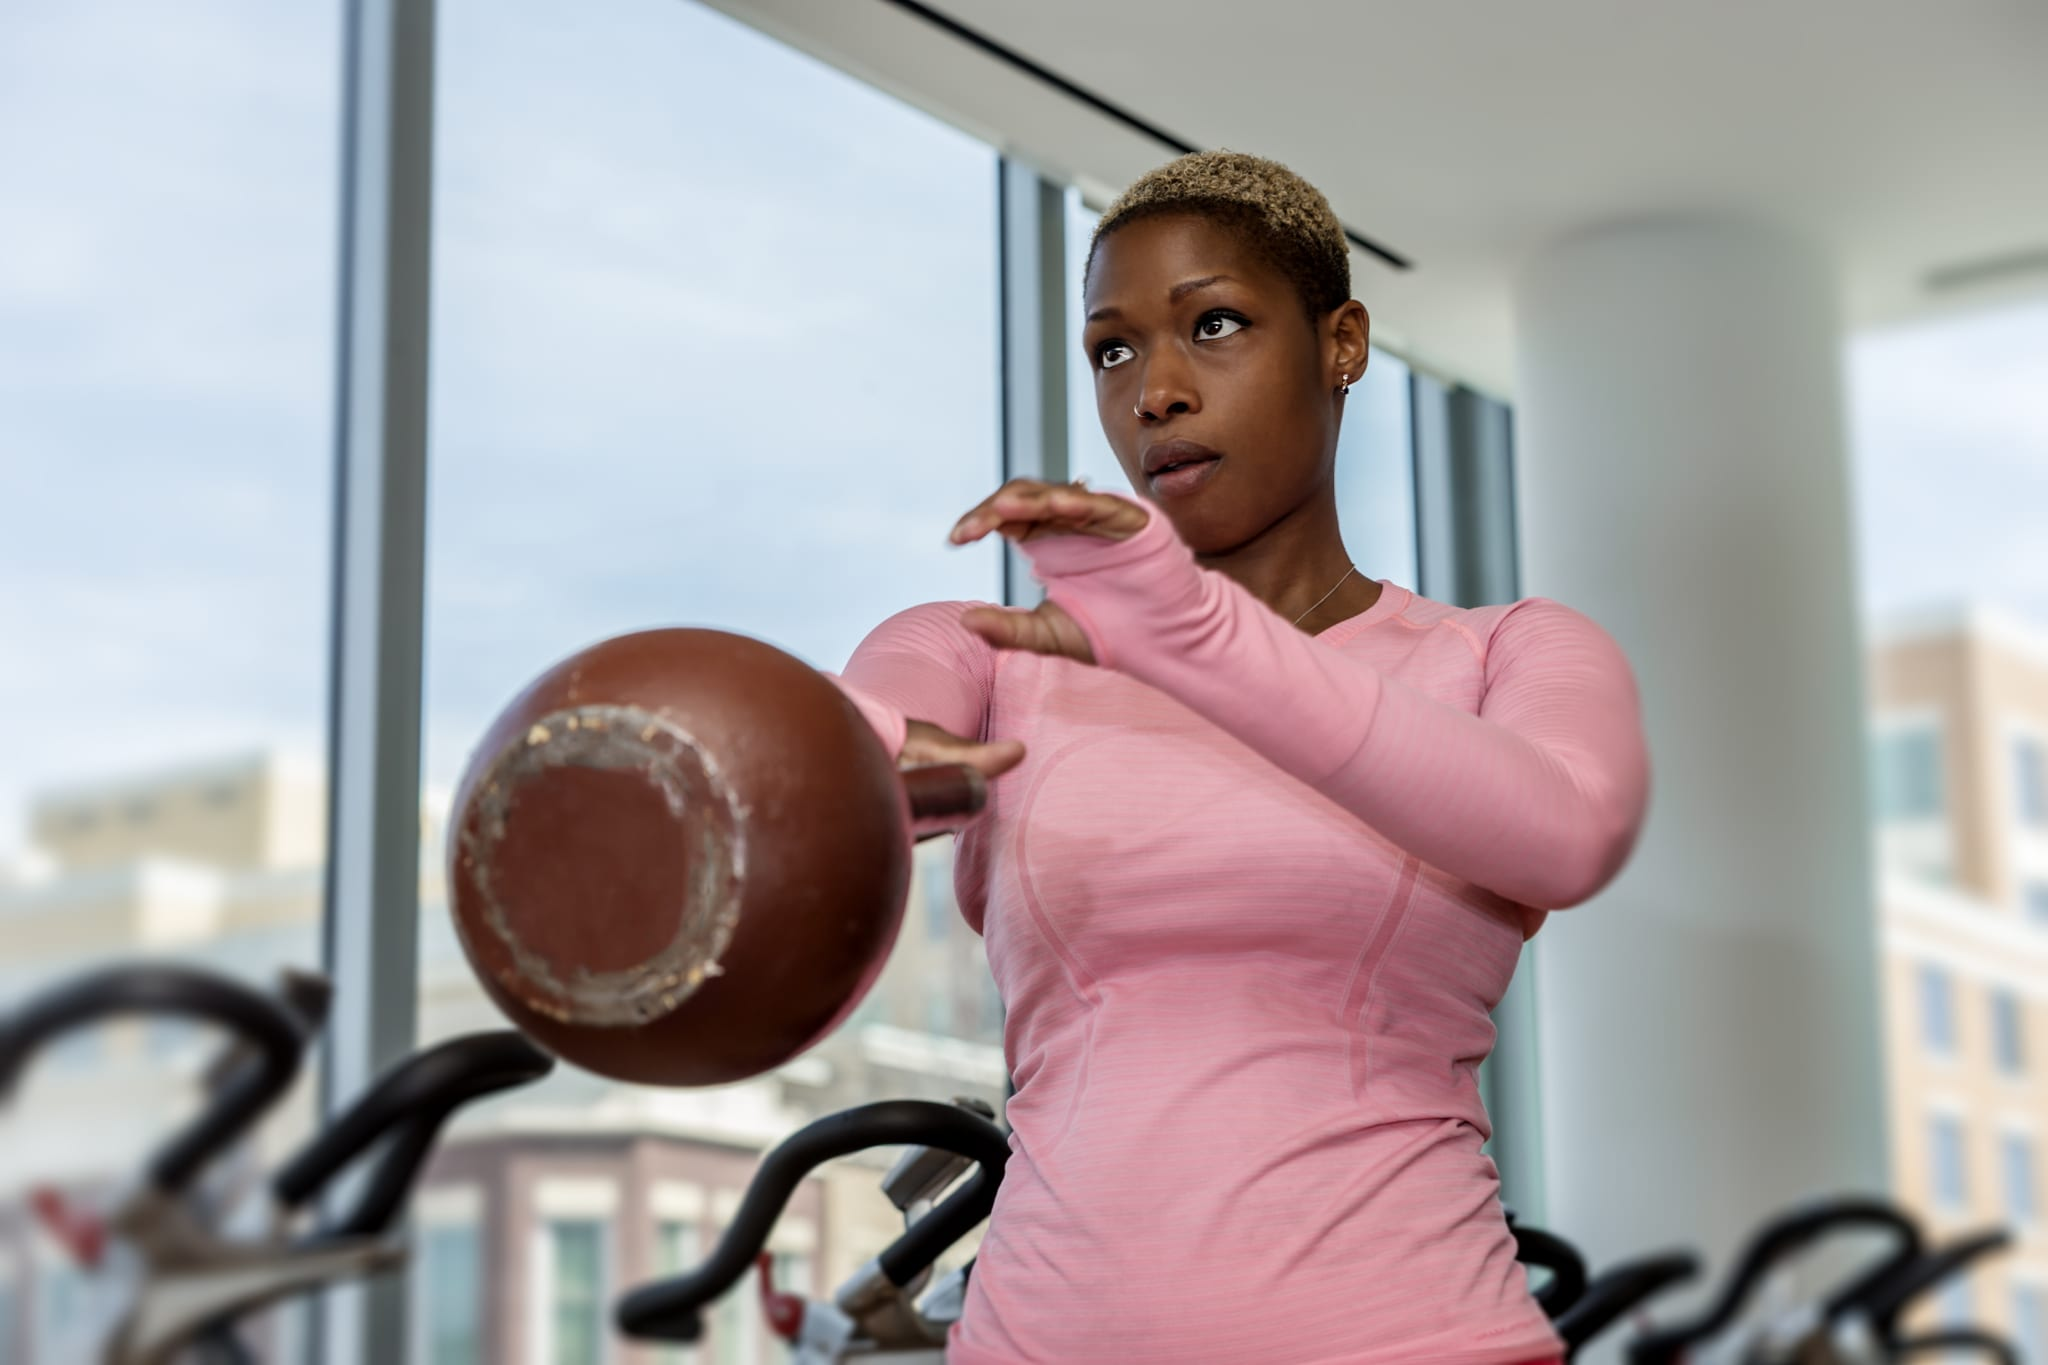 Close up of Sara lifting a kettle bell with her right arm.